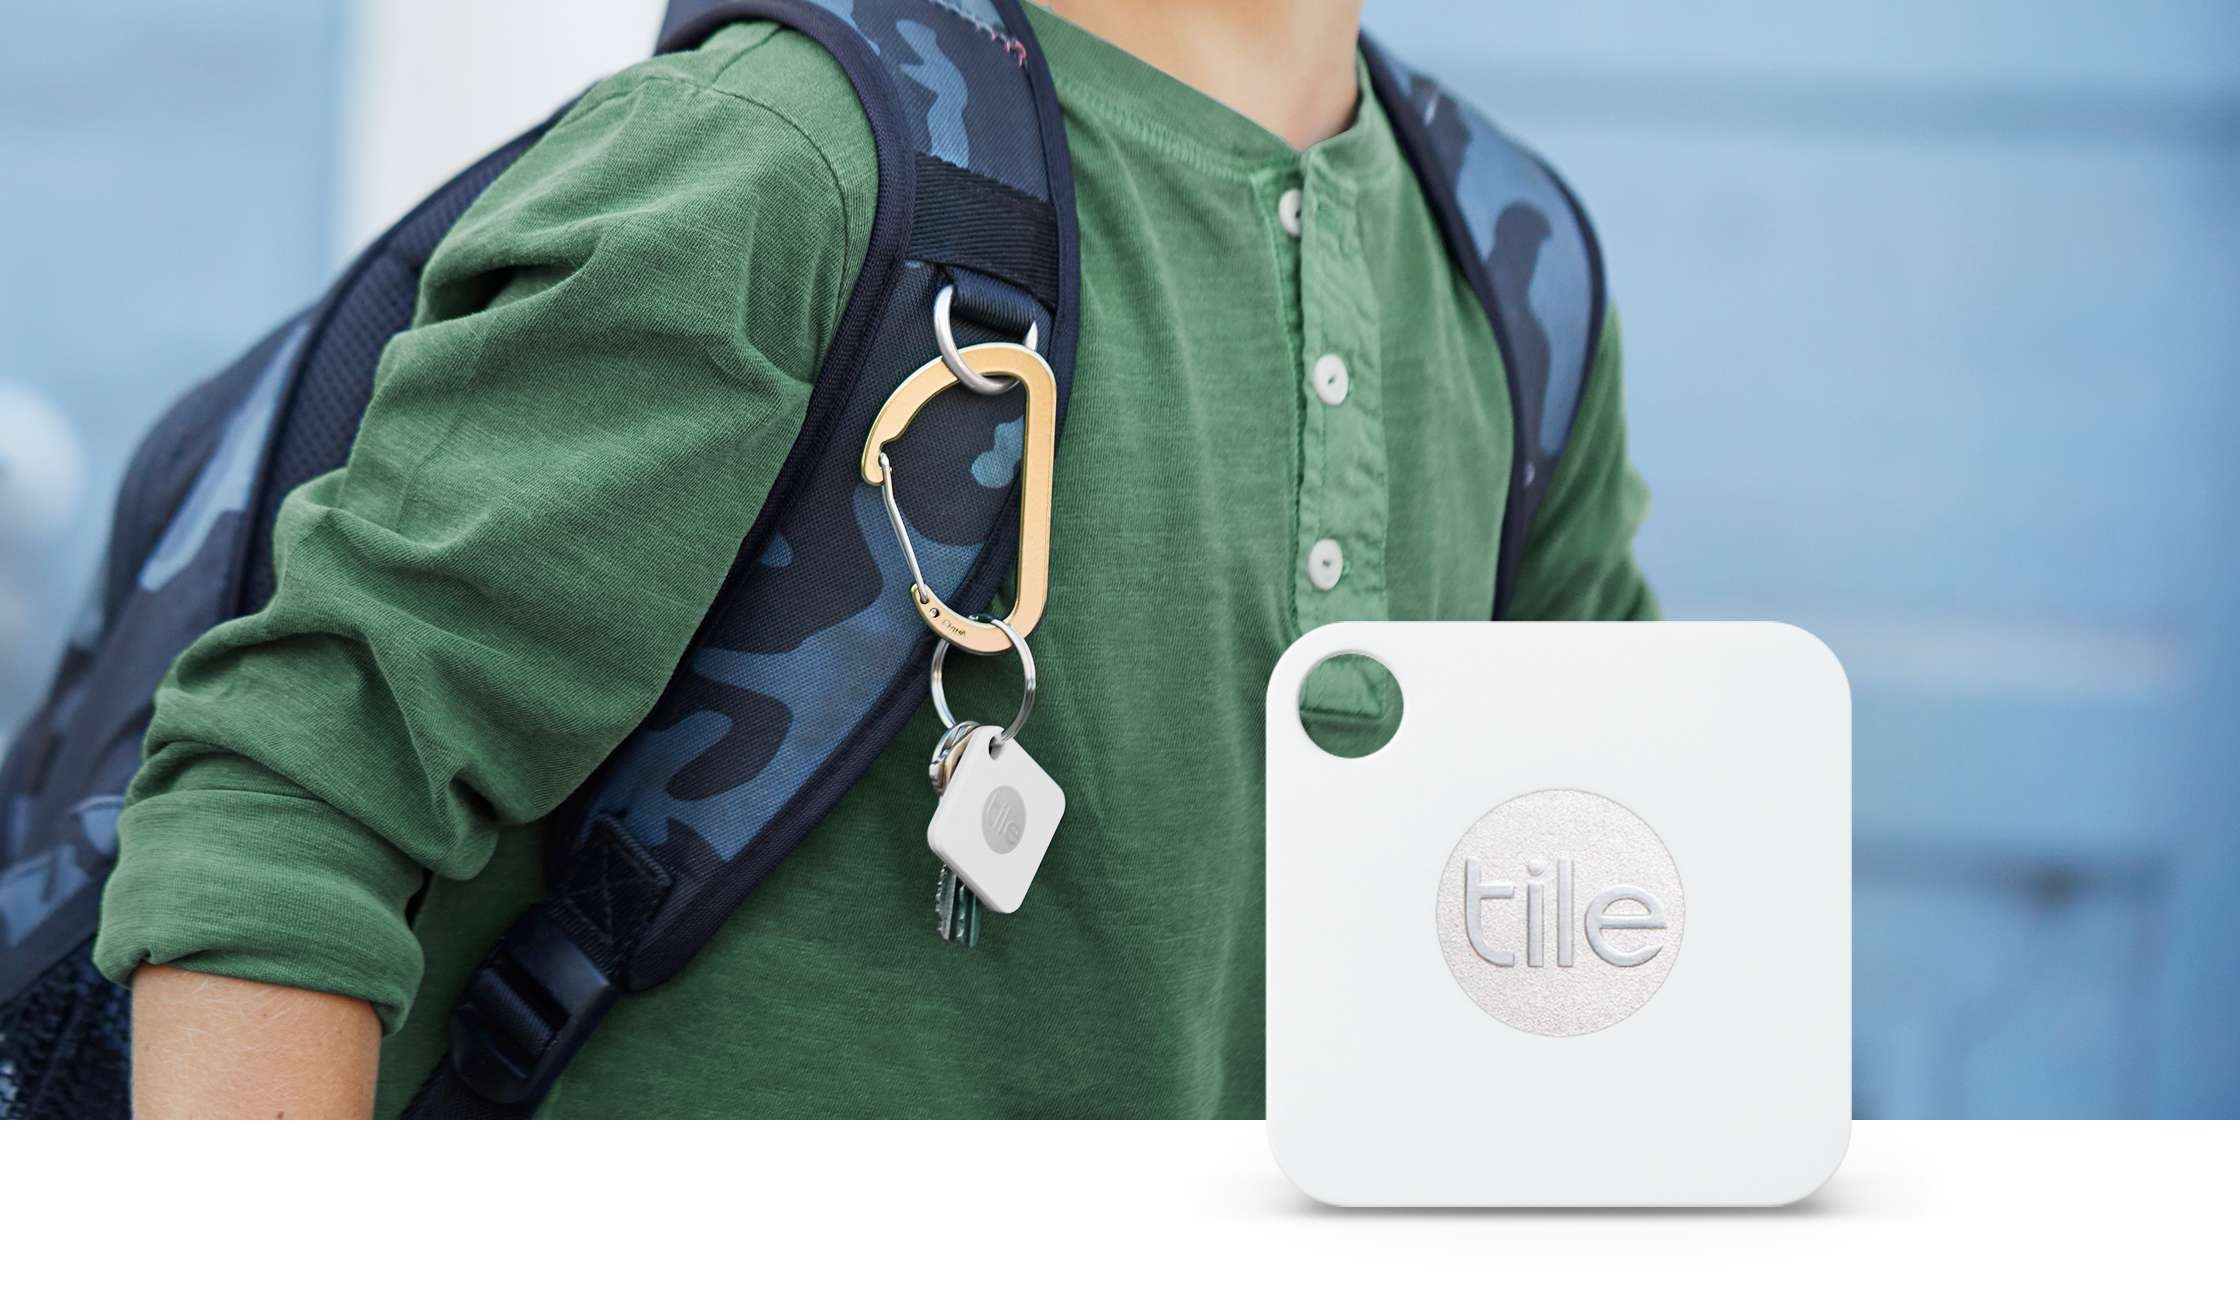 Tile Mate on backpack